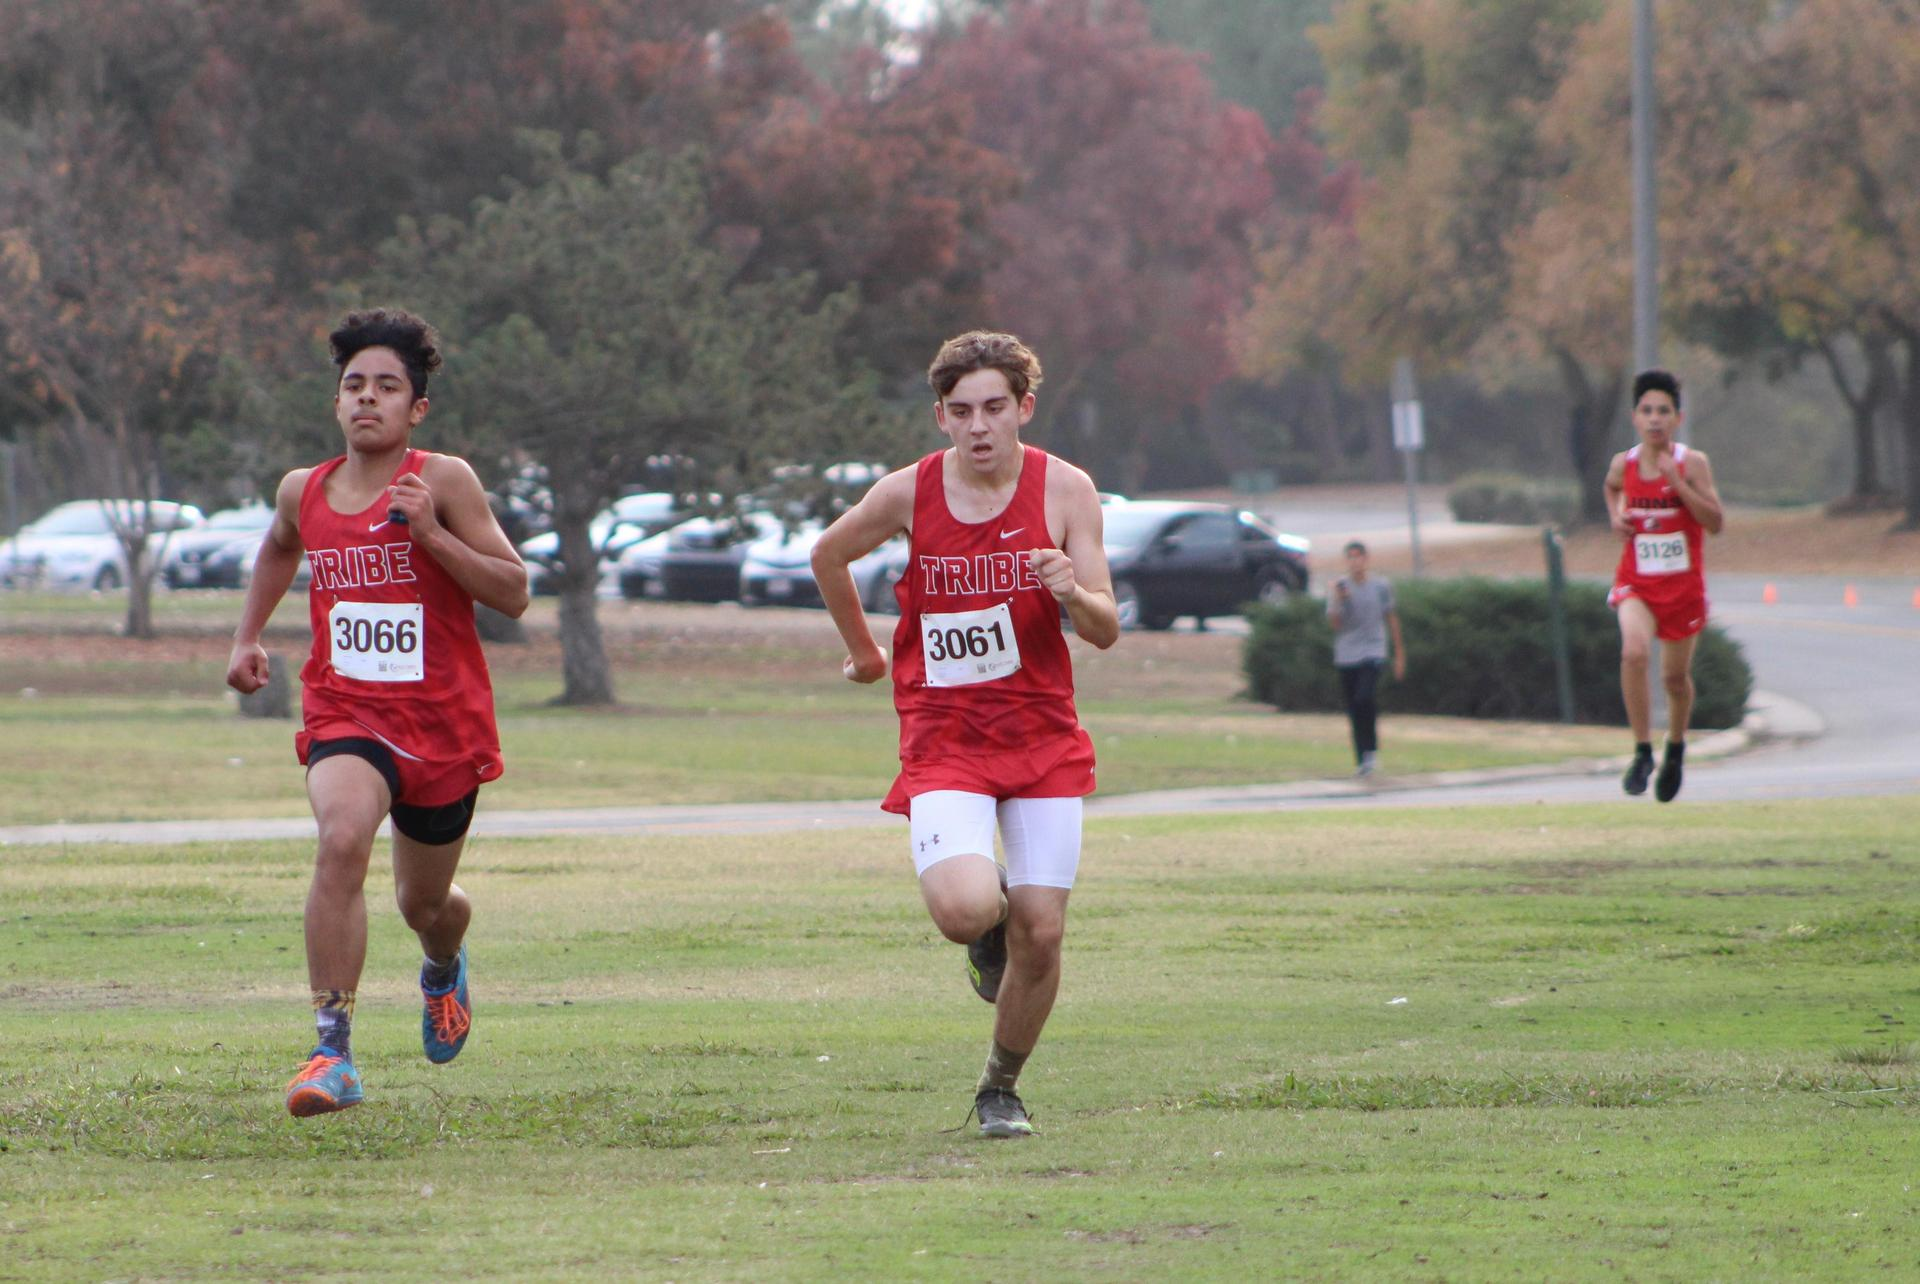 Carson Borba and Angel Gonzales coming to the finish line